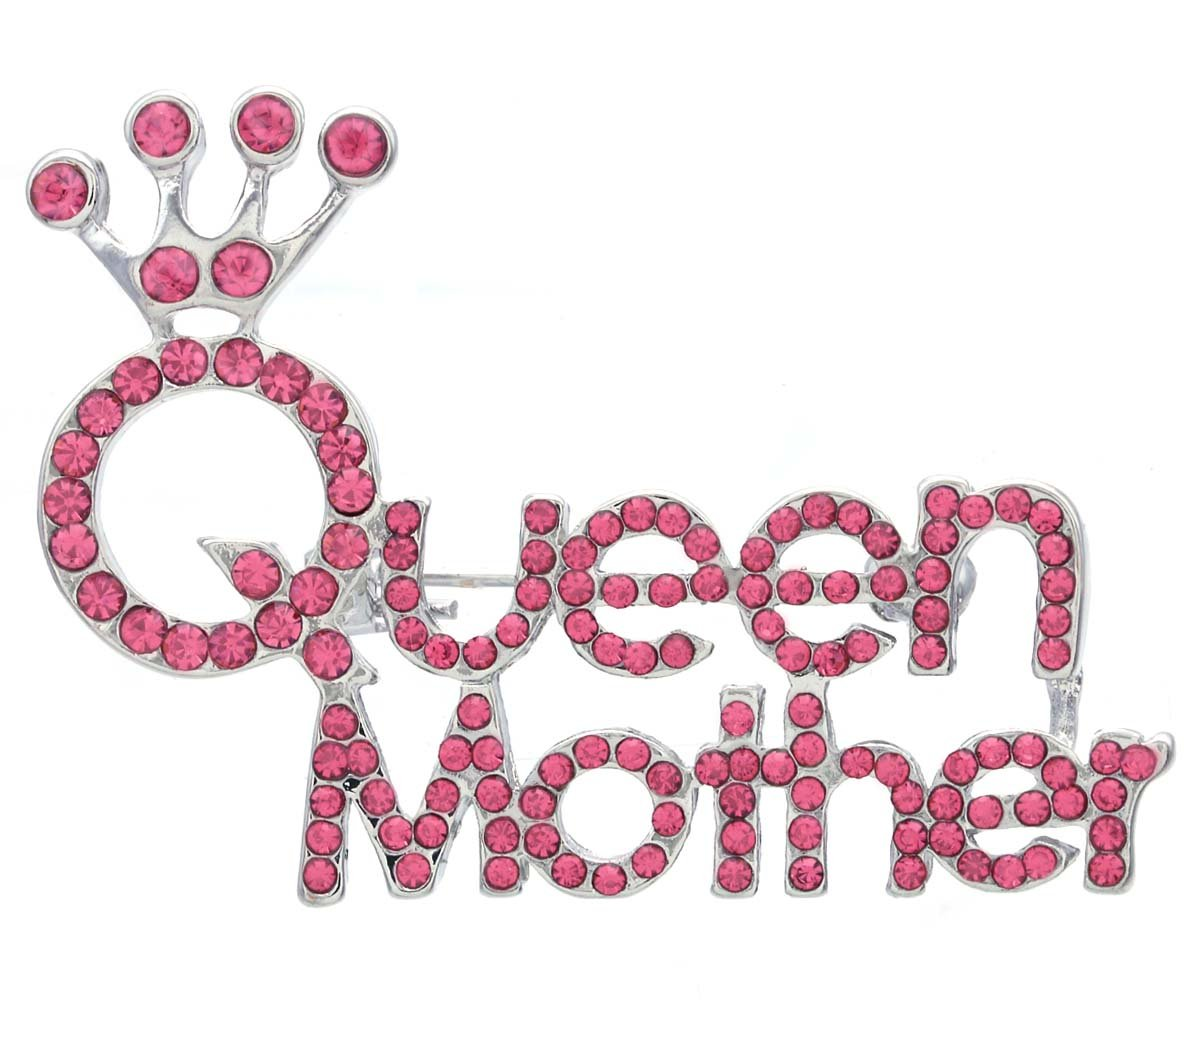 Crown Tiara ''Queen Mother'' Mother's Day Gift Brooch Pin Charm Rhinestone Gift for Mom (Pink)